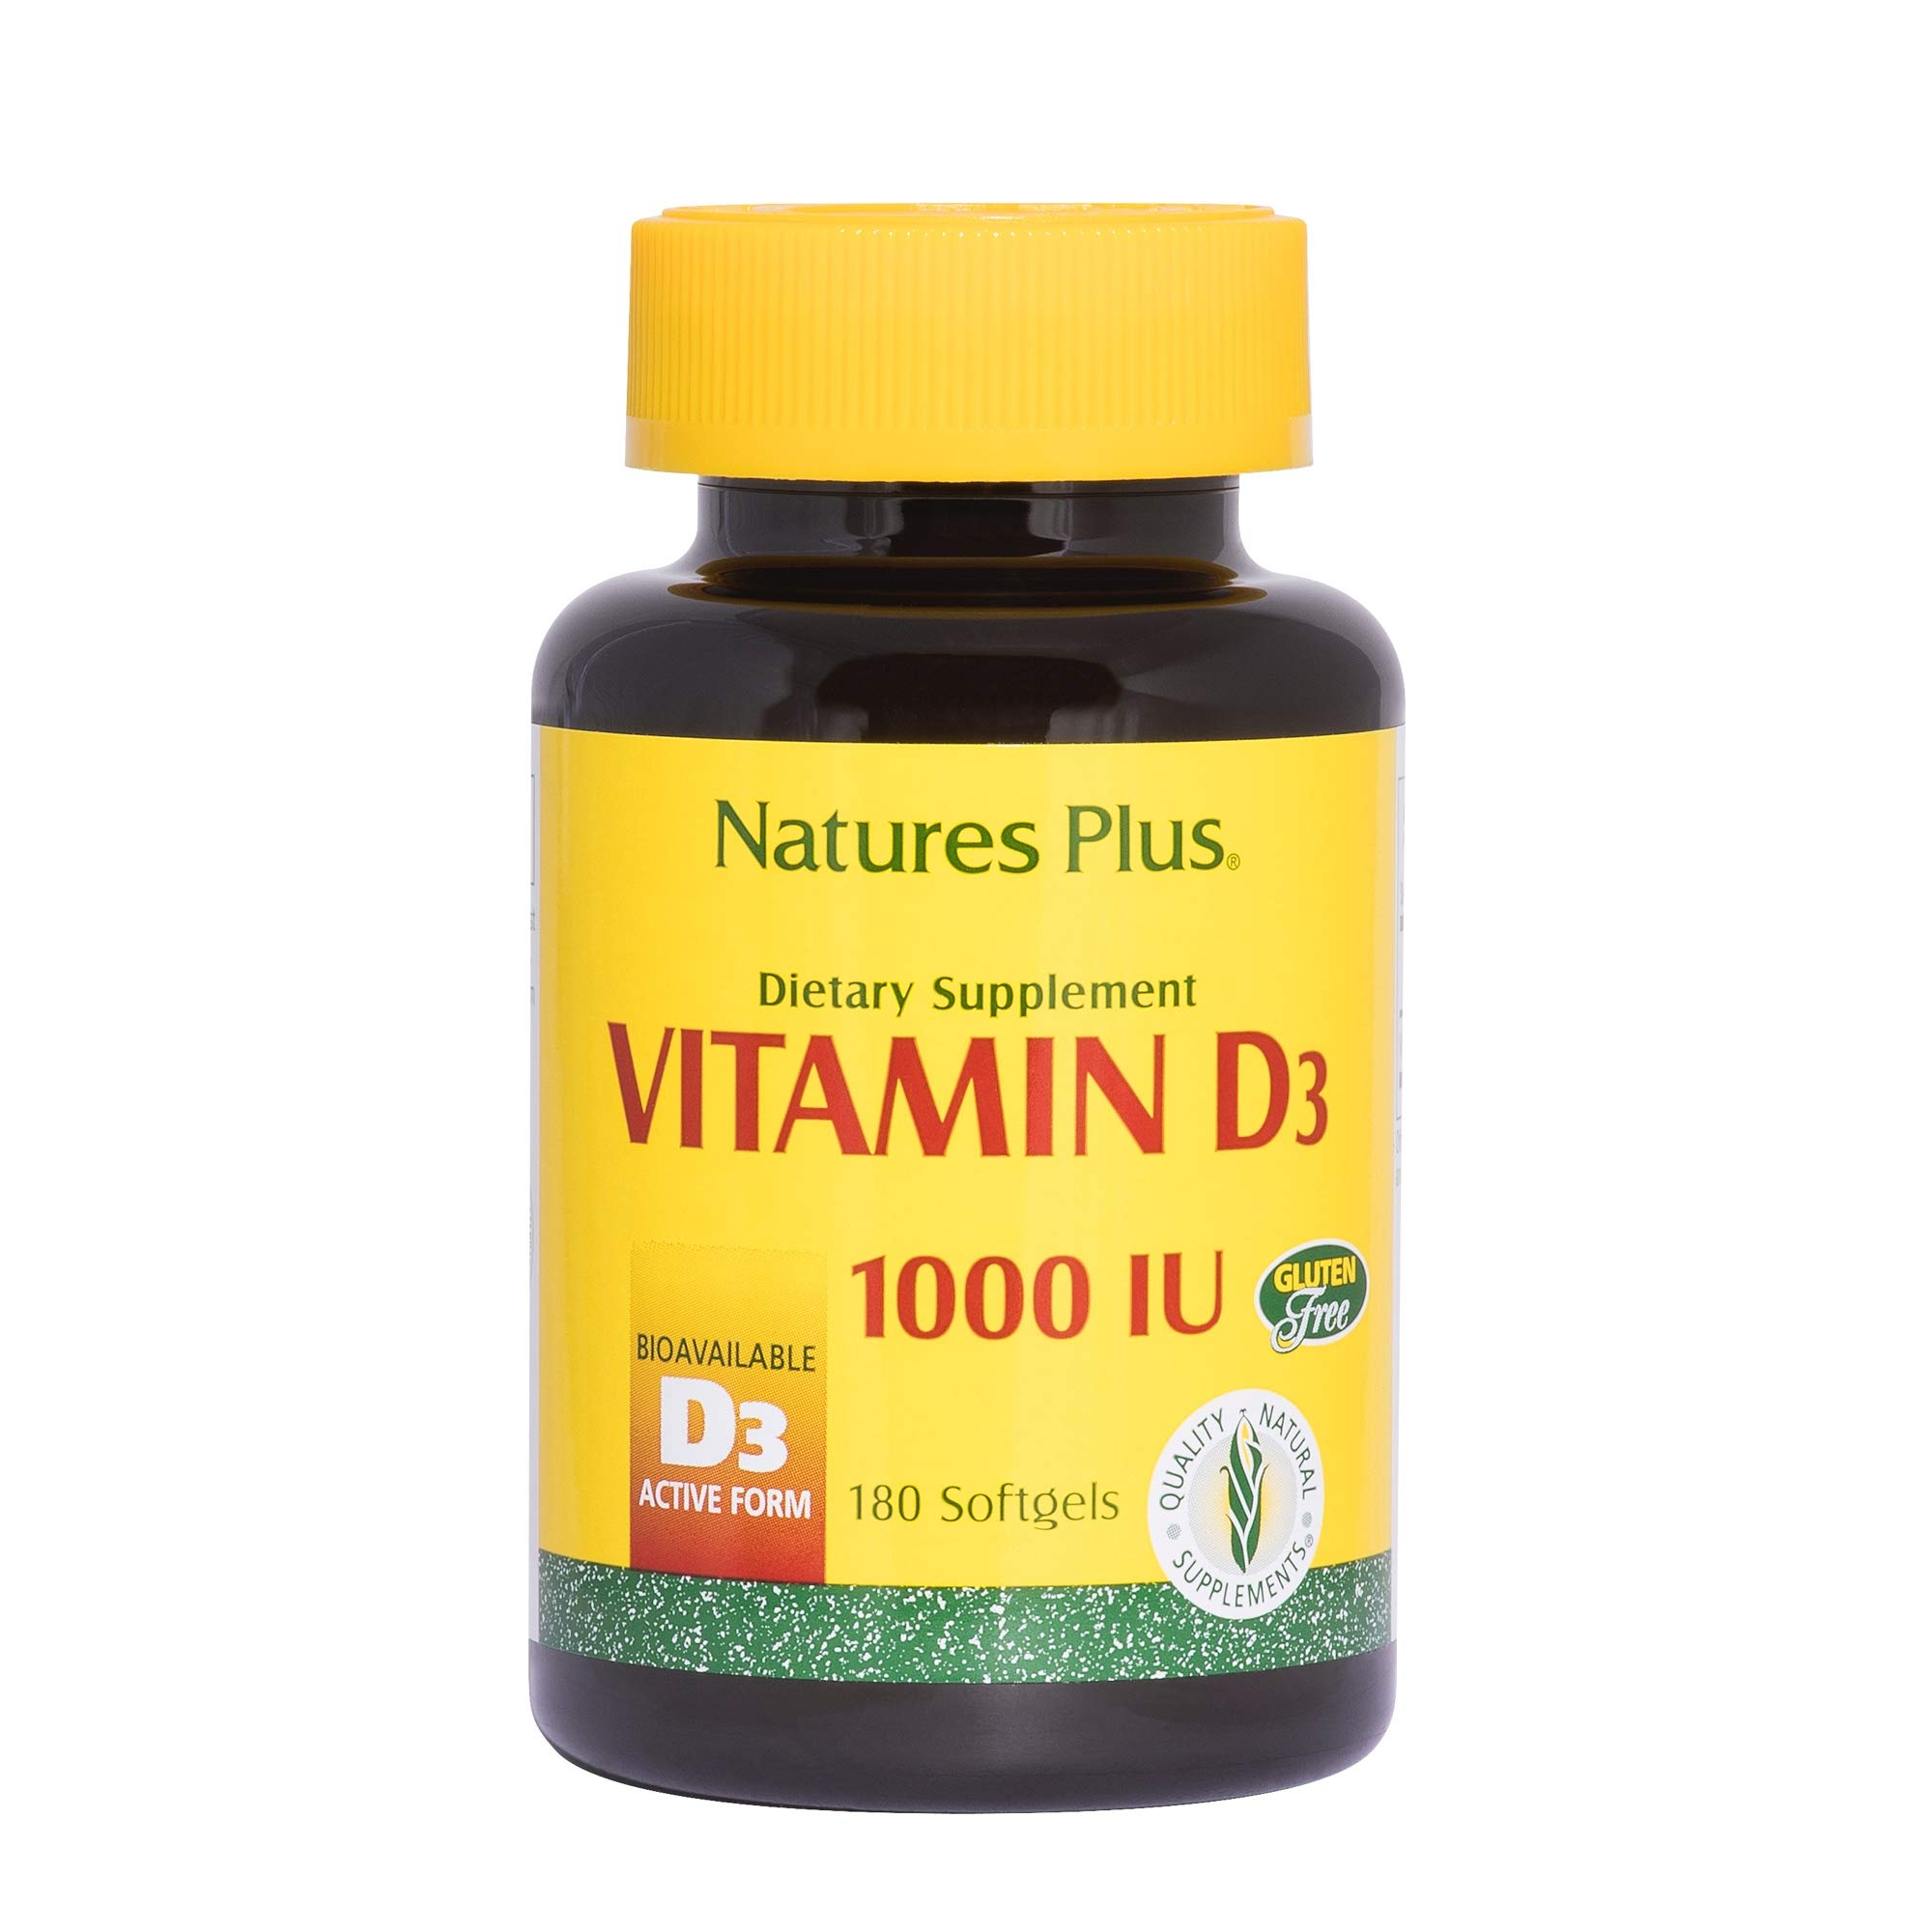 NaturesPlus Vitamin D3 (Cholecalciferol) - 1000 iu, 180 Softgels - Nutritional Support for Healthy Bones & Immune System Support - Bioavailable Active Form - Gluten-Free - 180 Servings